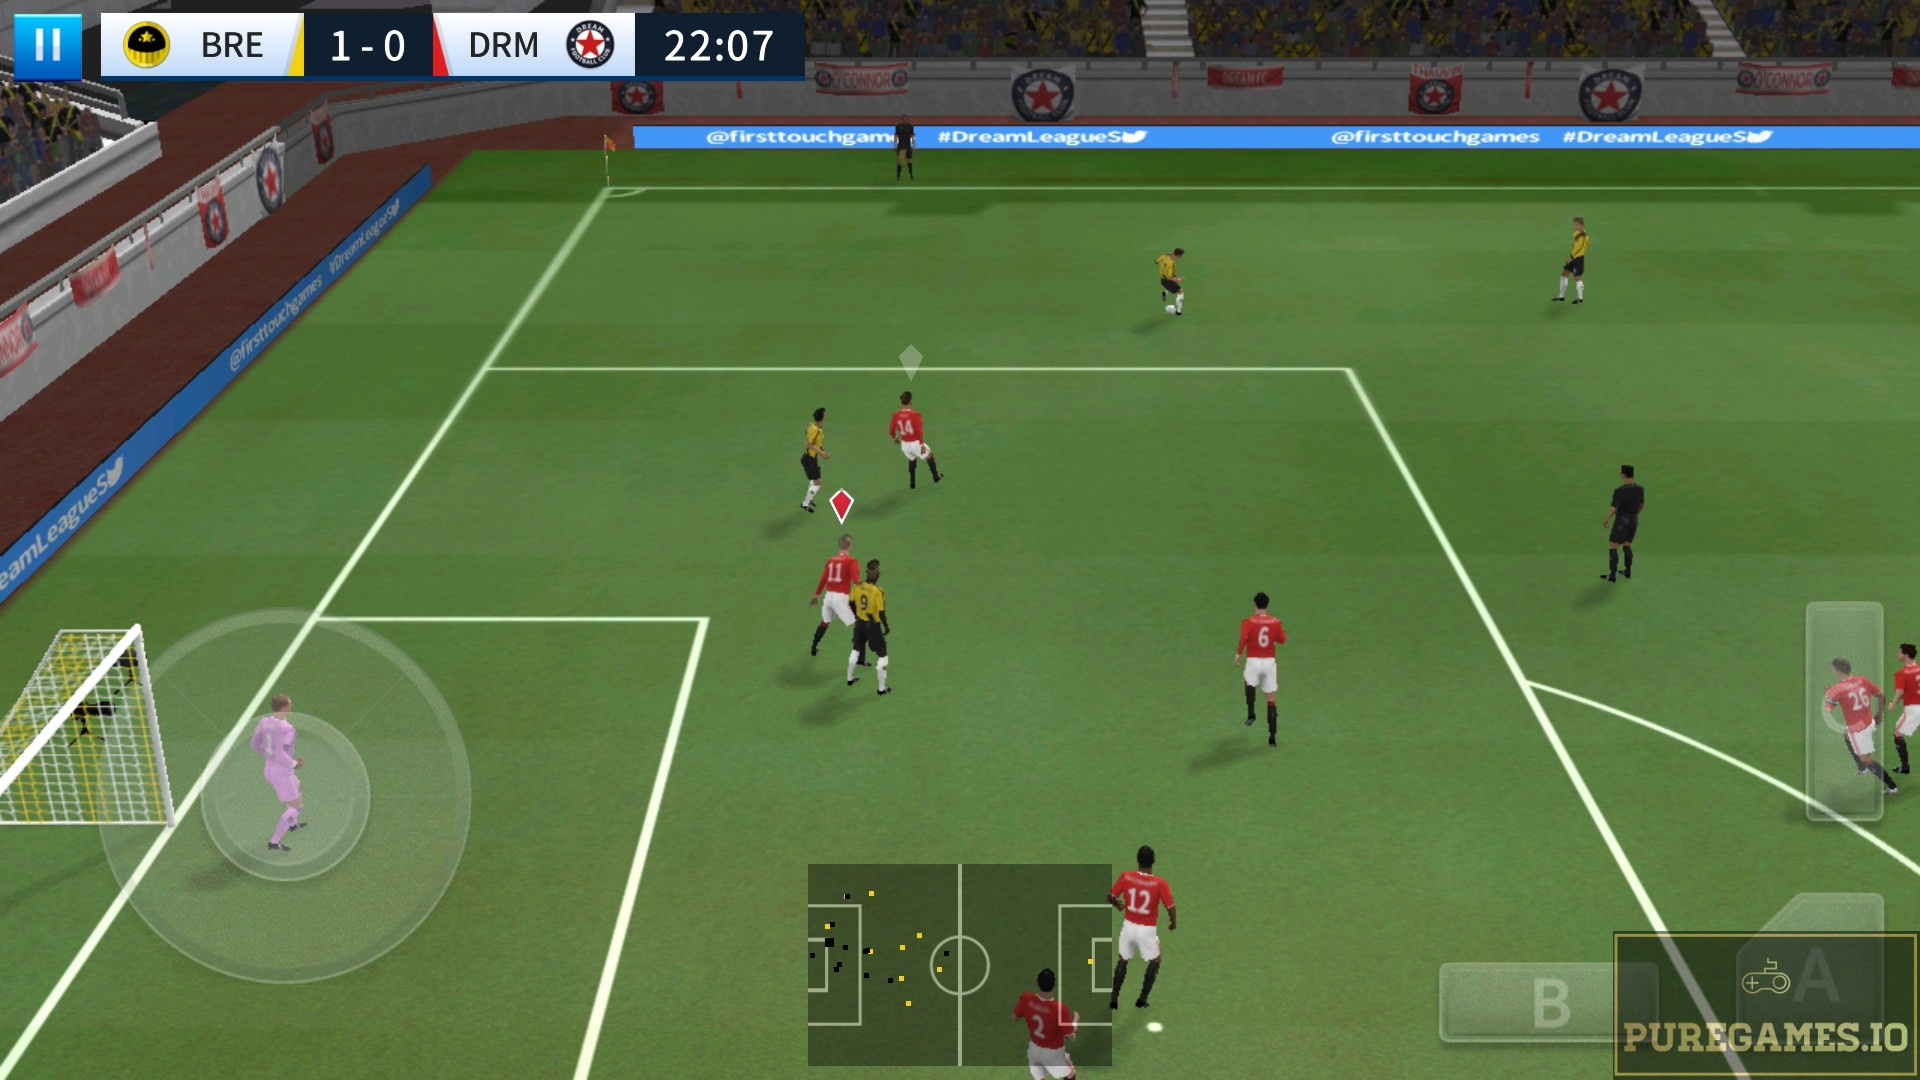 Download Dream League Soccer 2018 APK - For Android/iOS 2